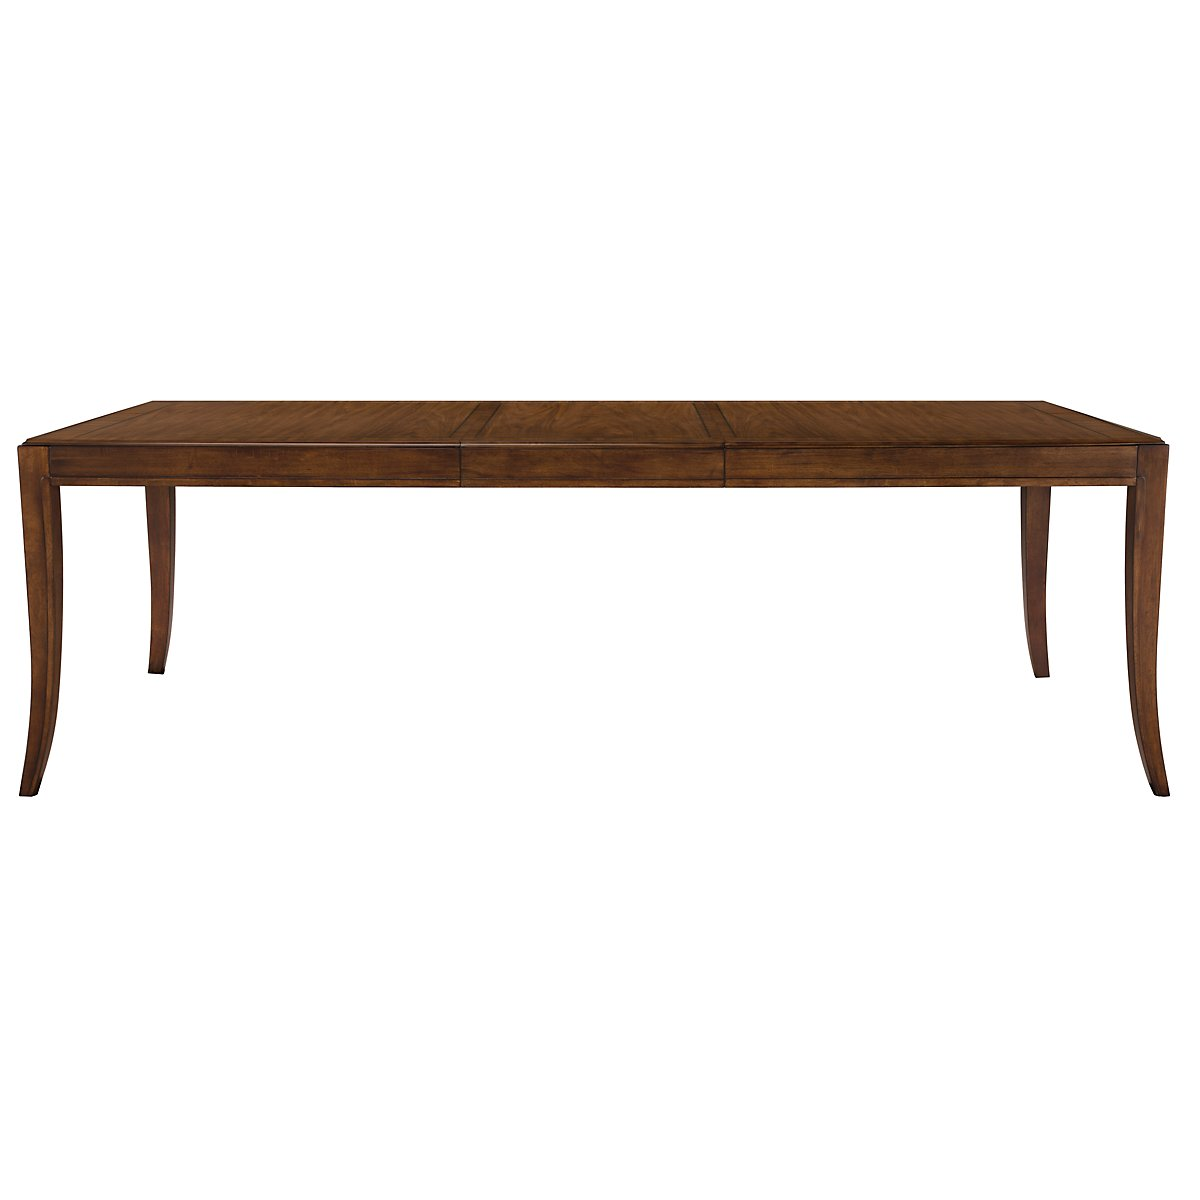 Savoy Mid Tone Rectangular Table